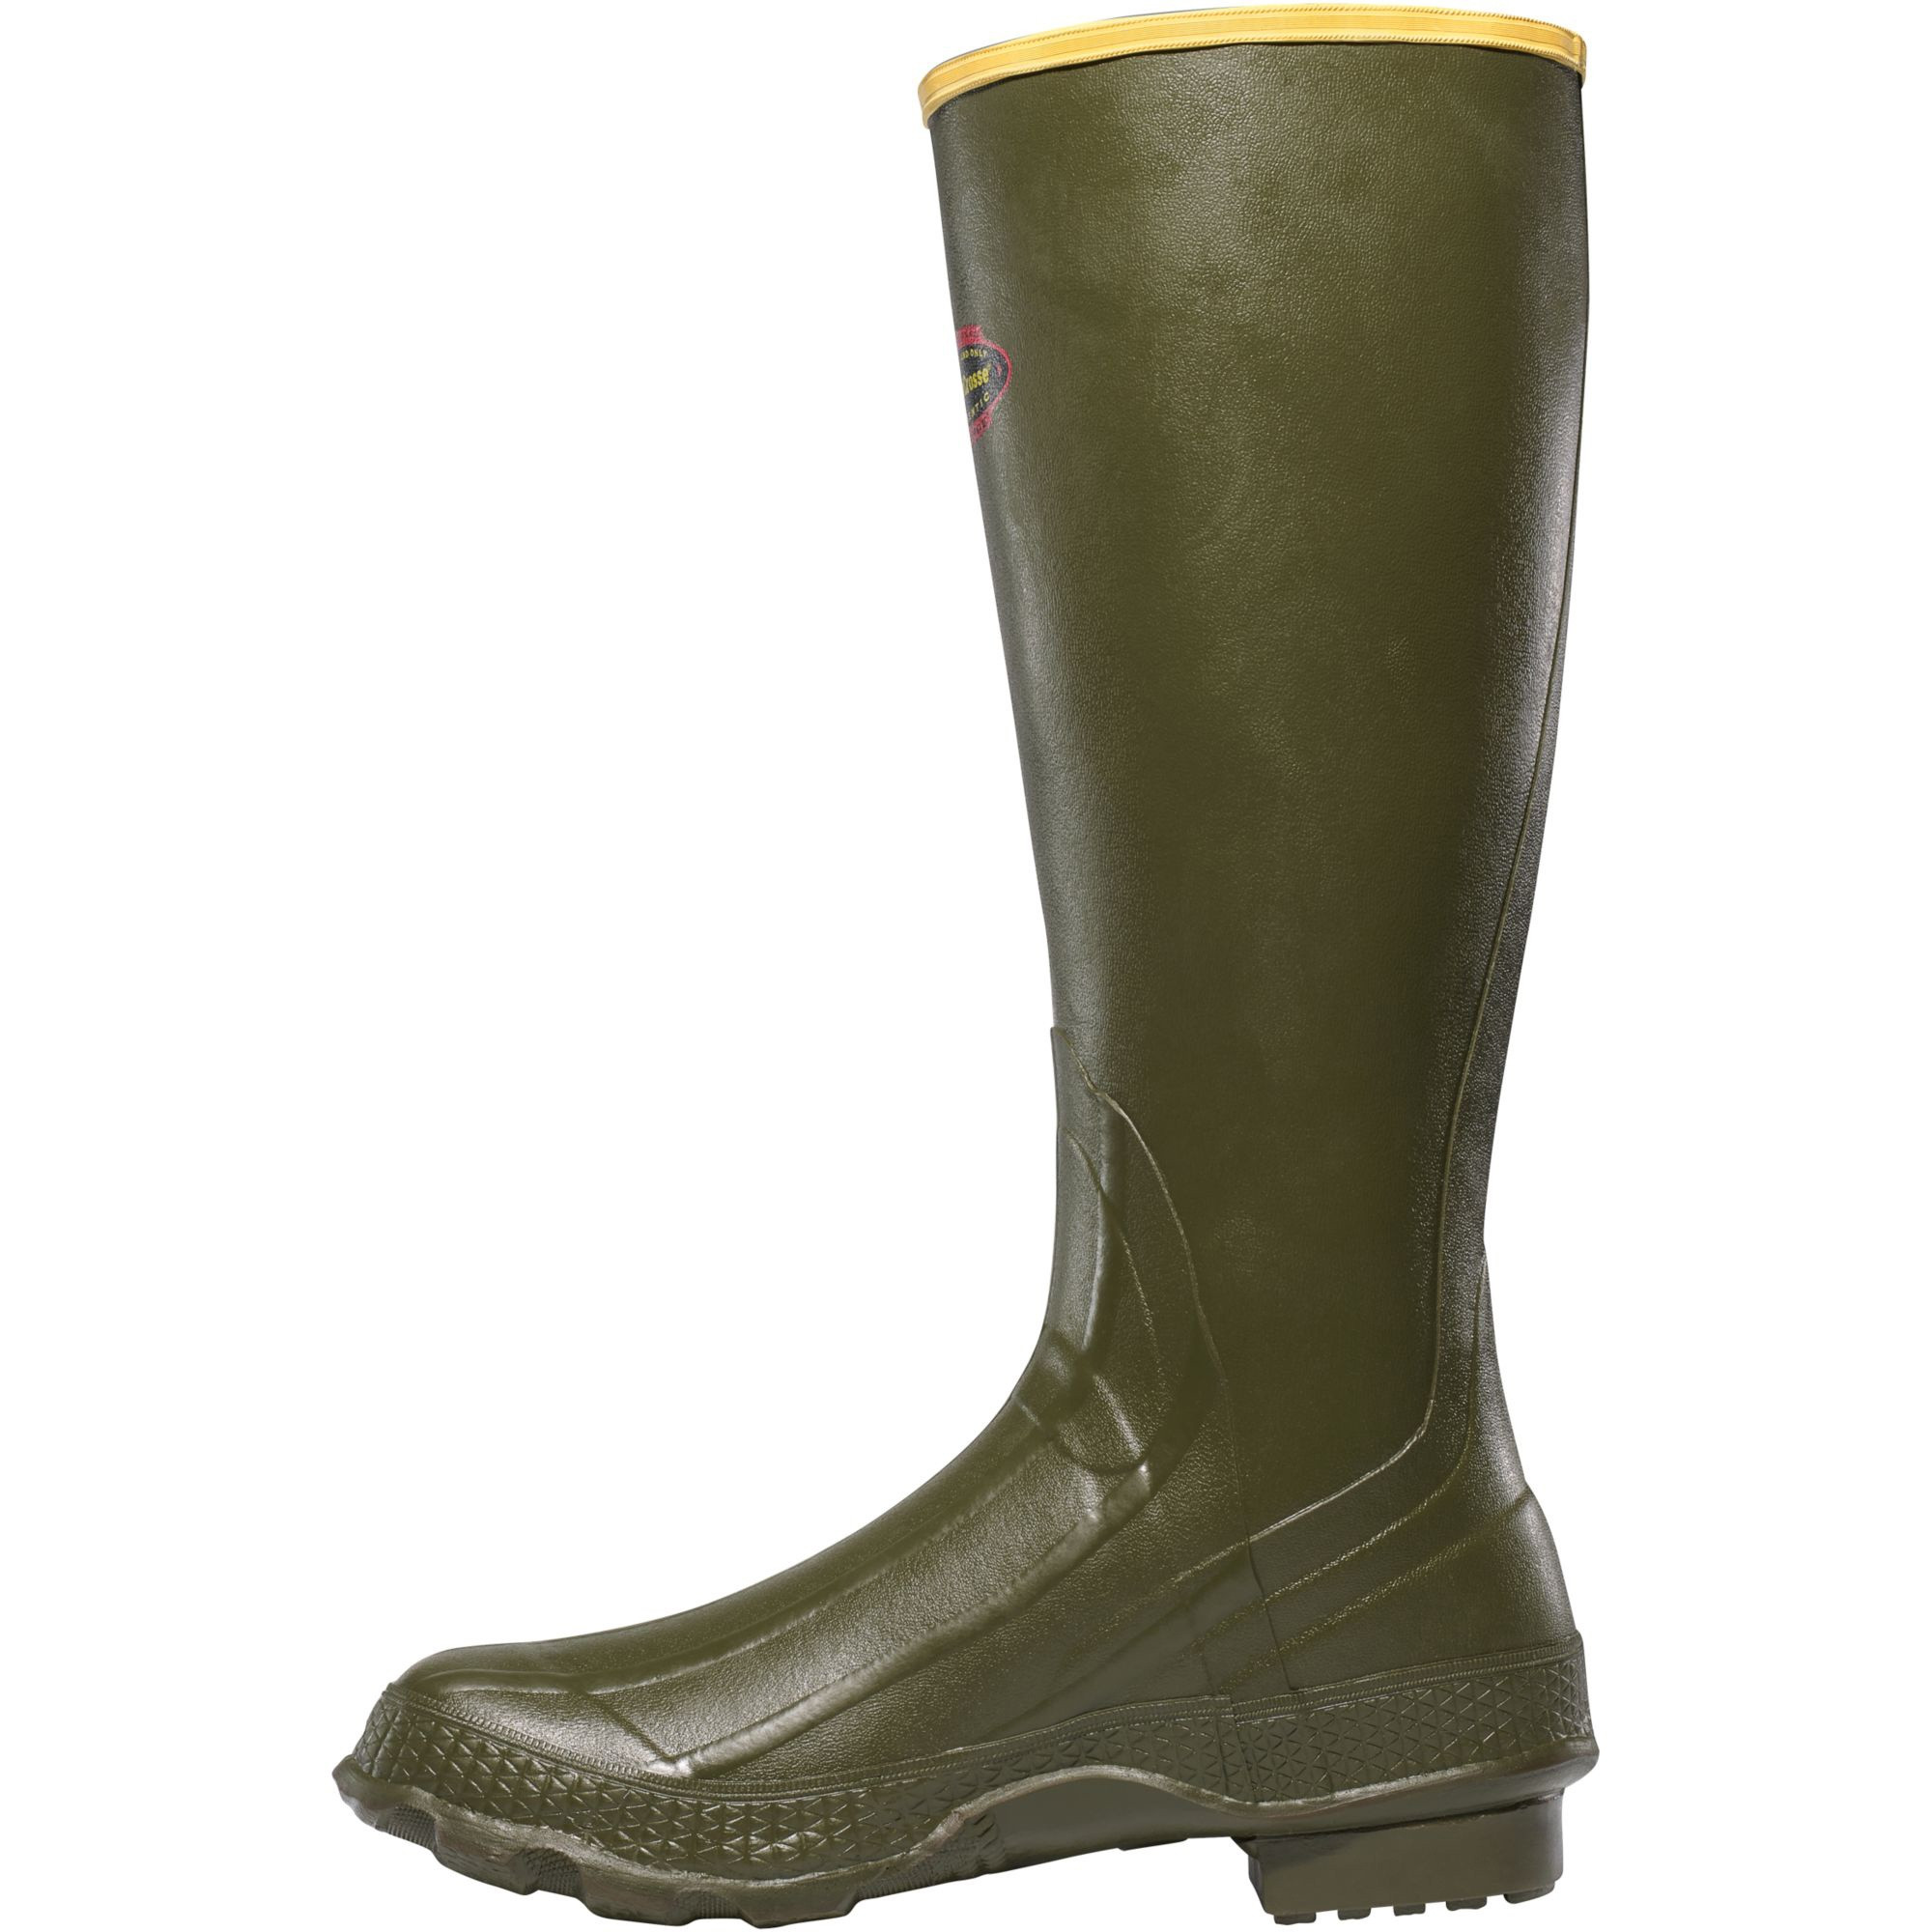 LaCrosse Grange Non-Insulated Rubber Hunting Boots - Olive Drab Green  d5d8bea0e2ba